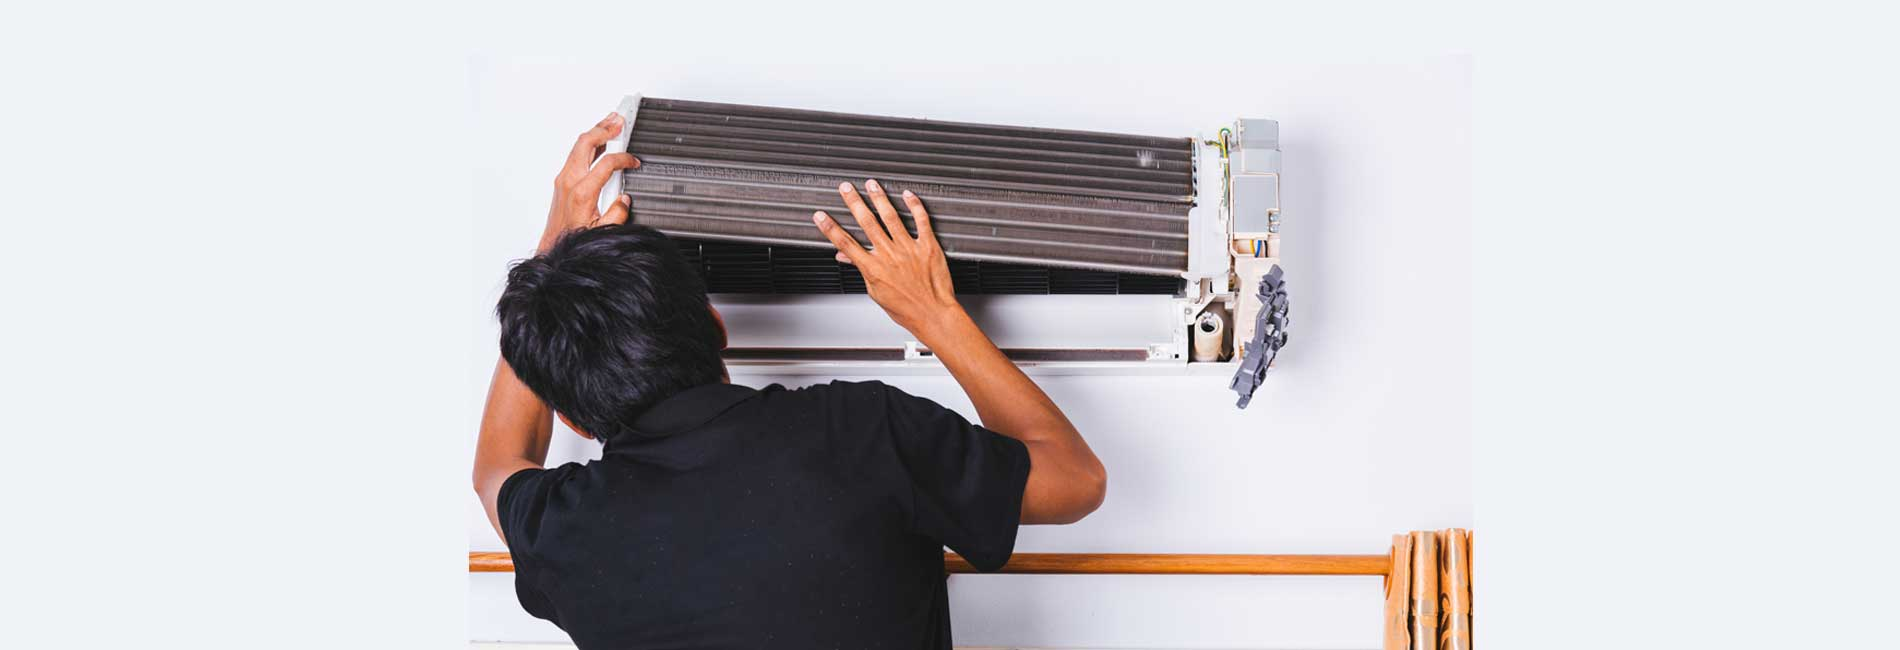 Air Condition Repair in Nanganallur